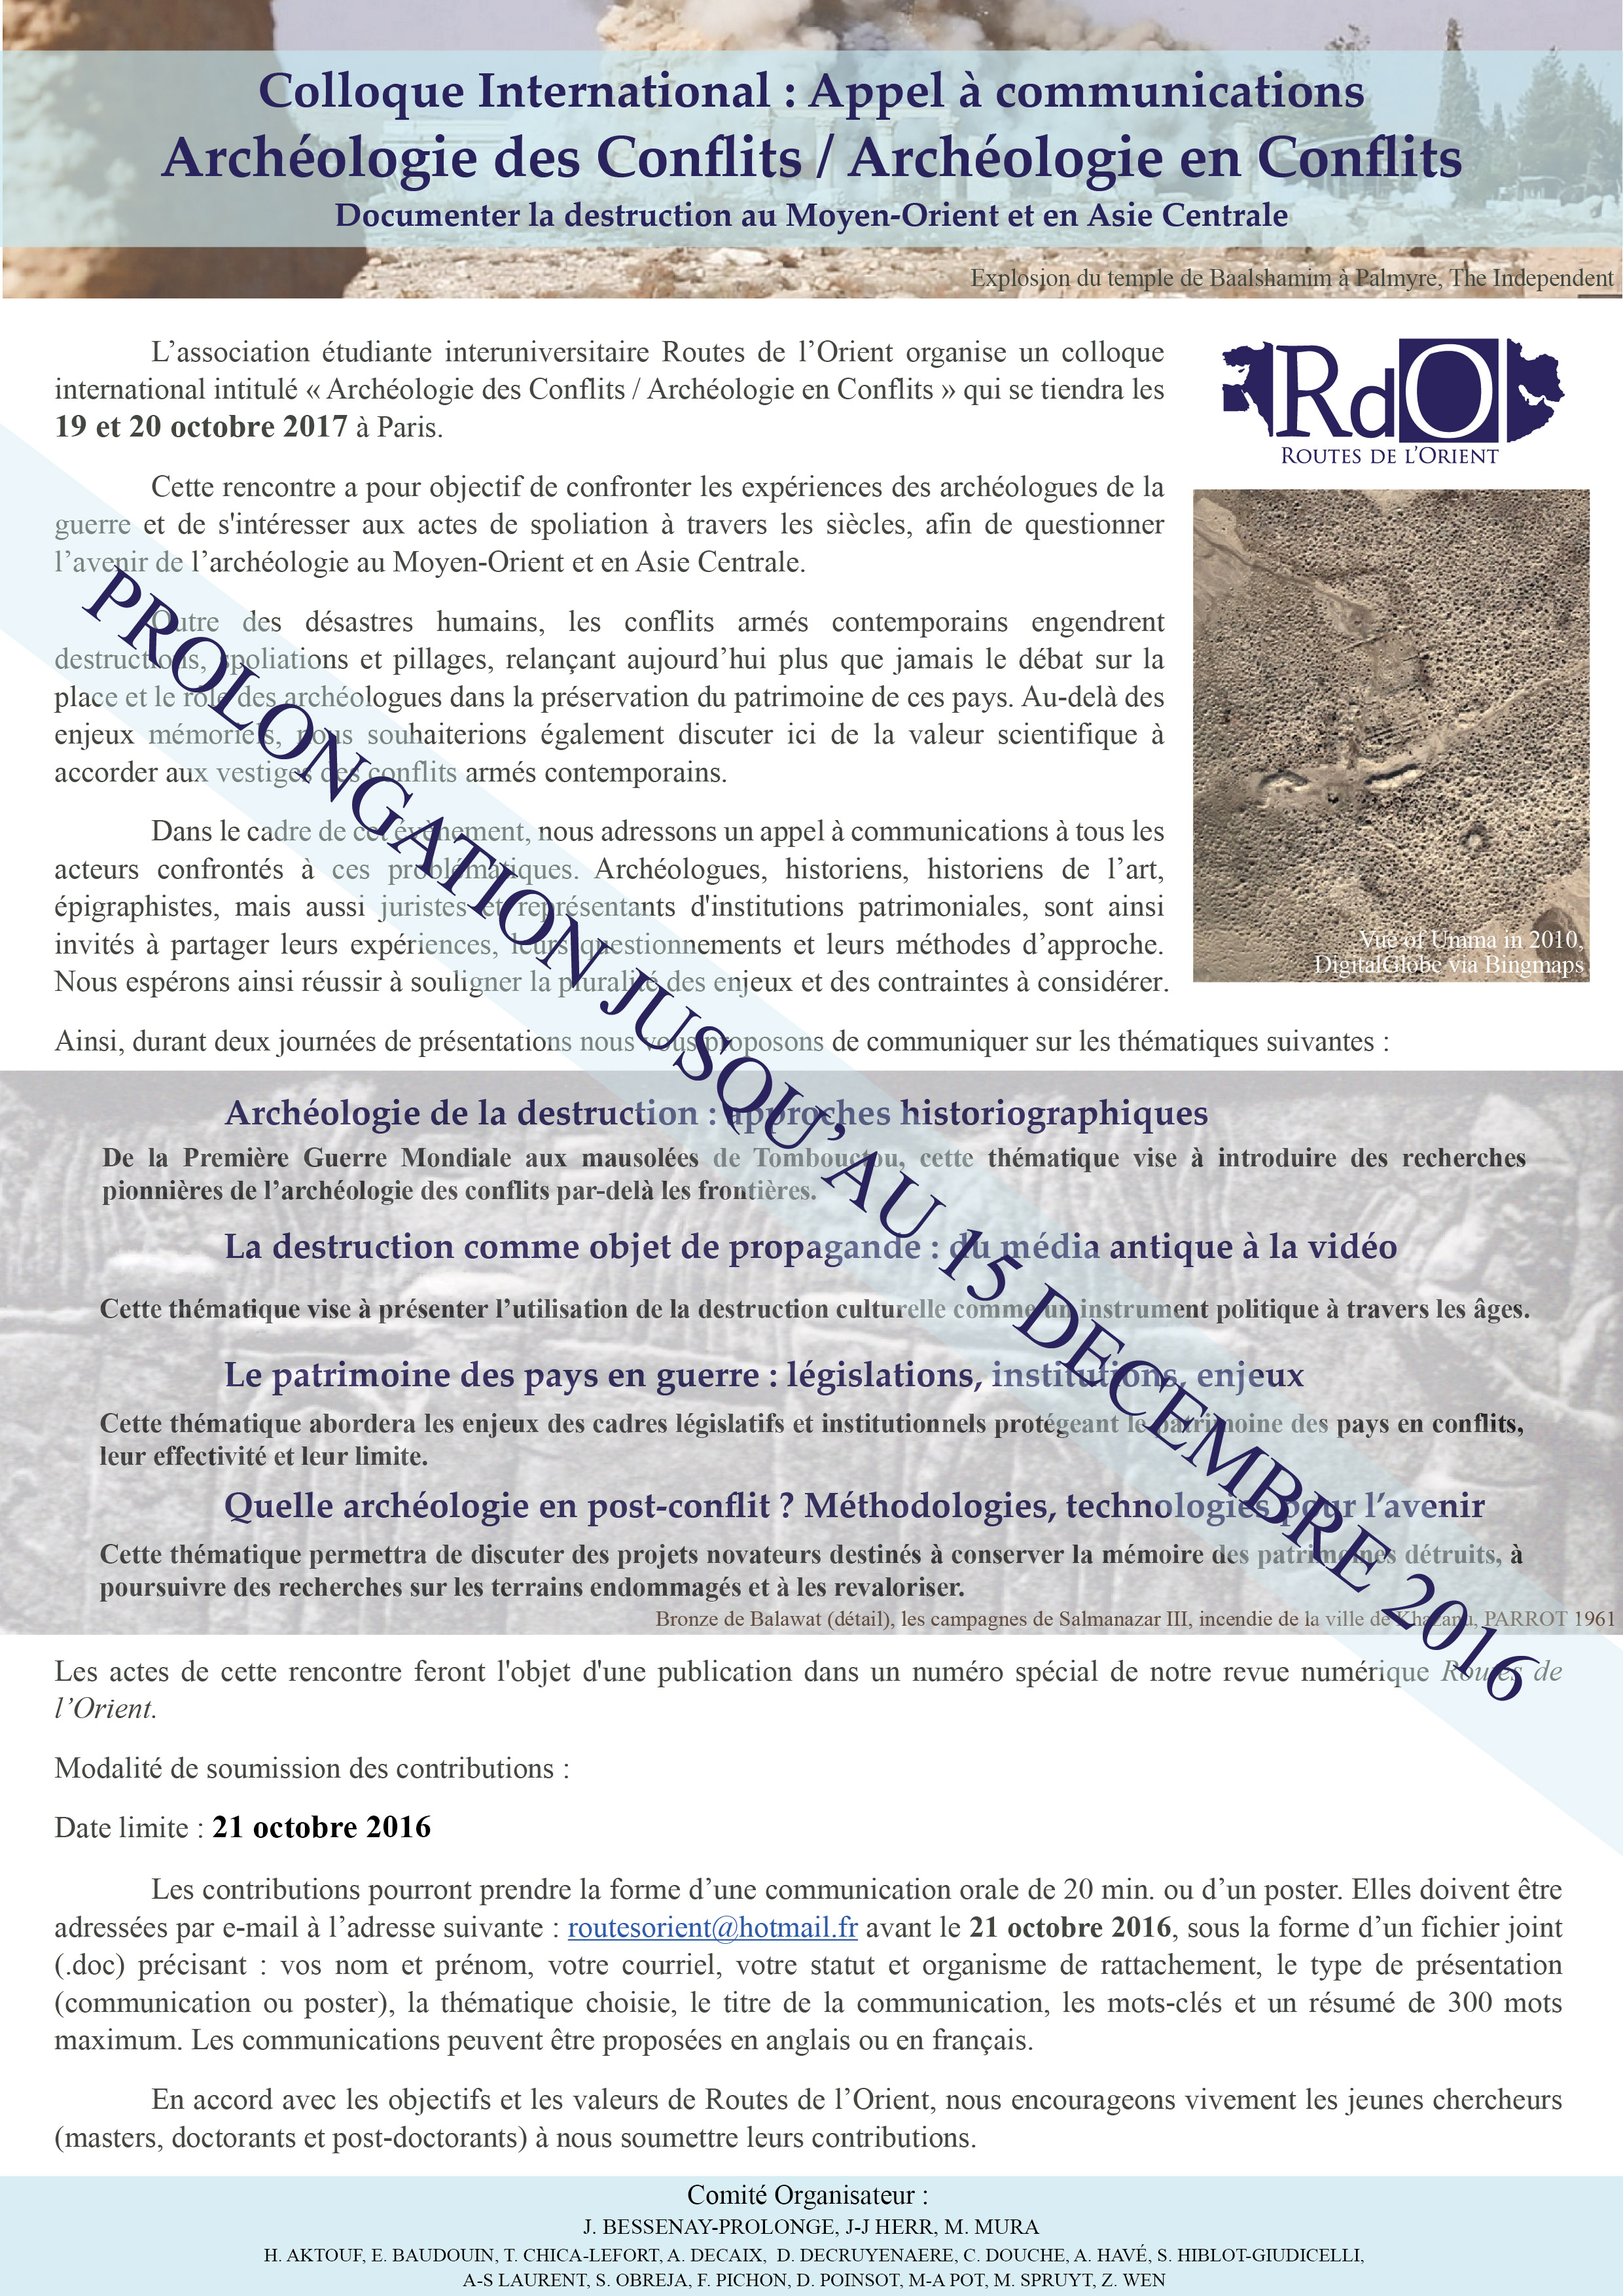 prolongation_rdo_appel_communication_archeologie_des_conflits_fr-01-01-01